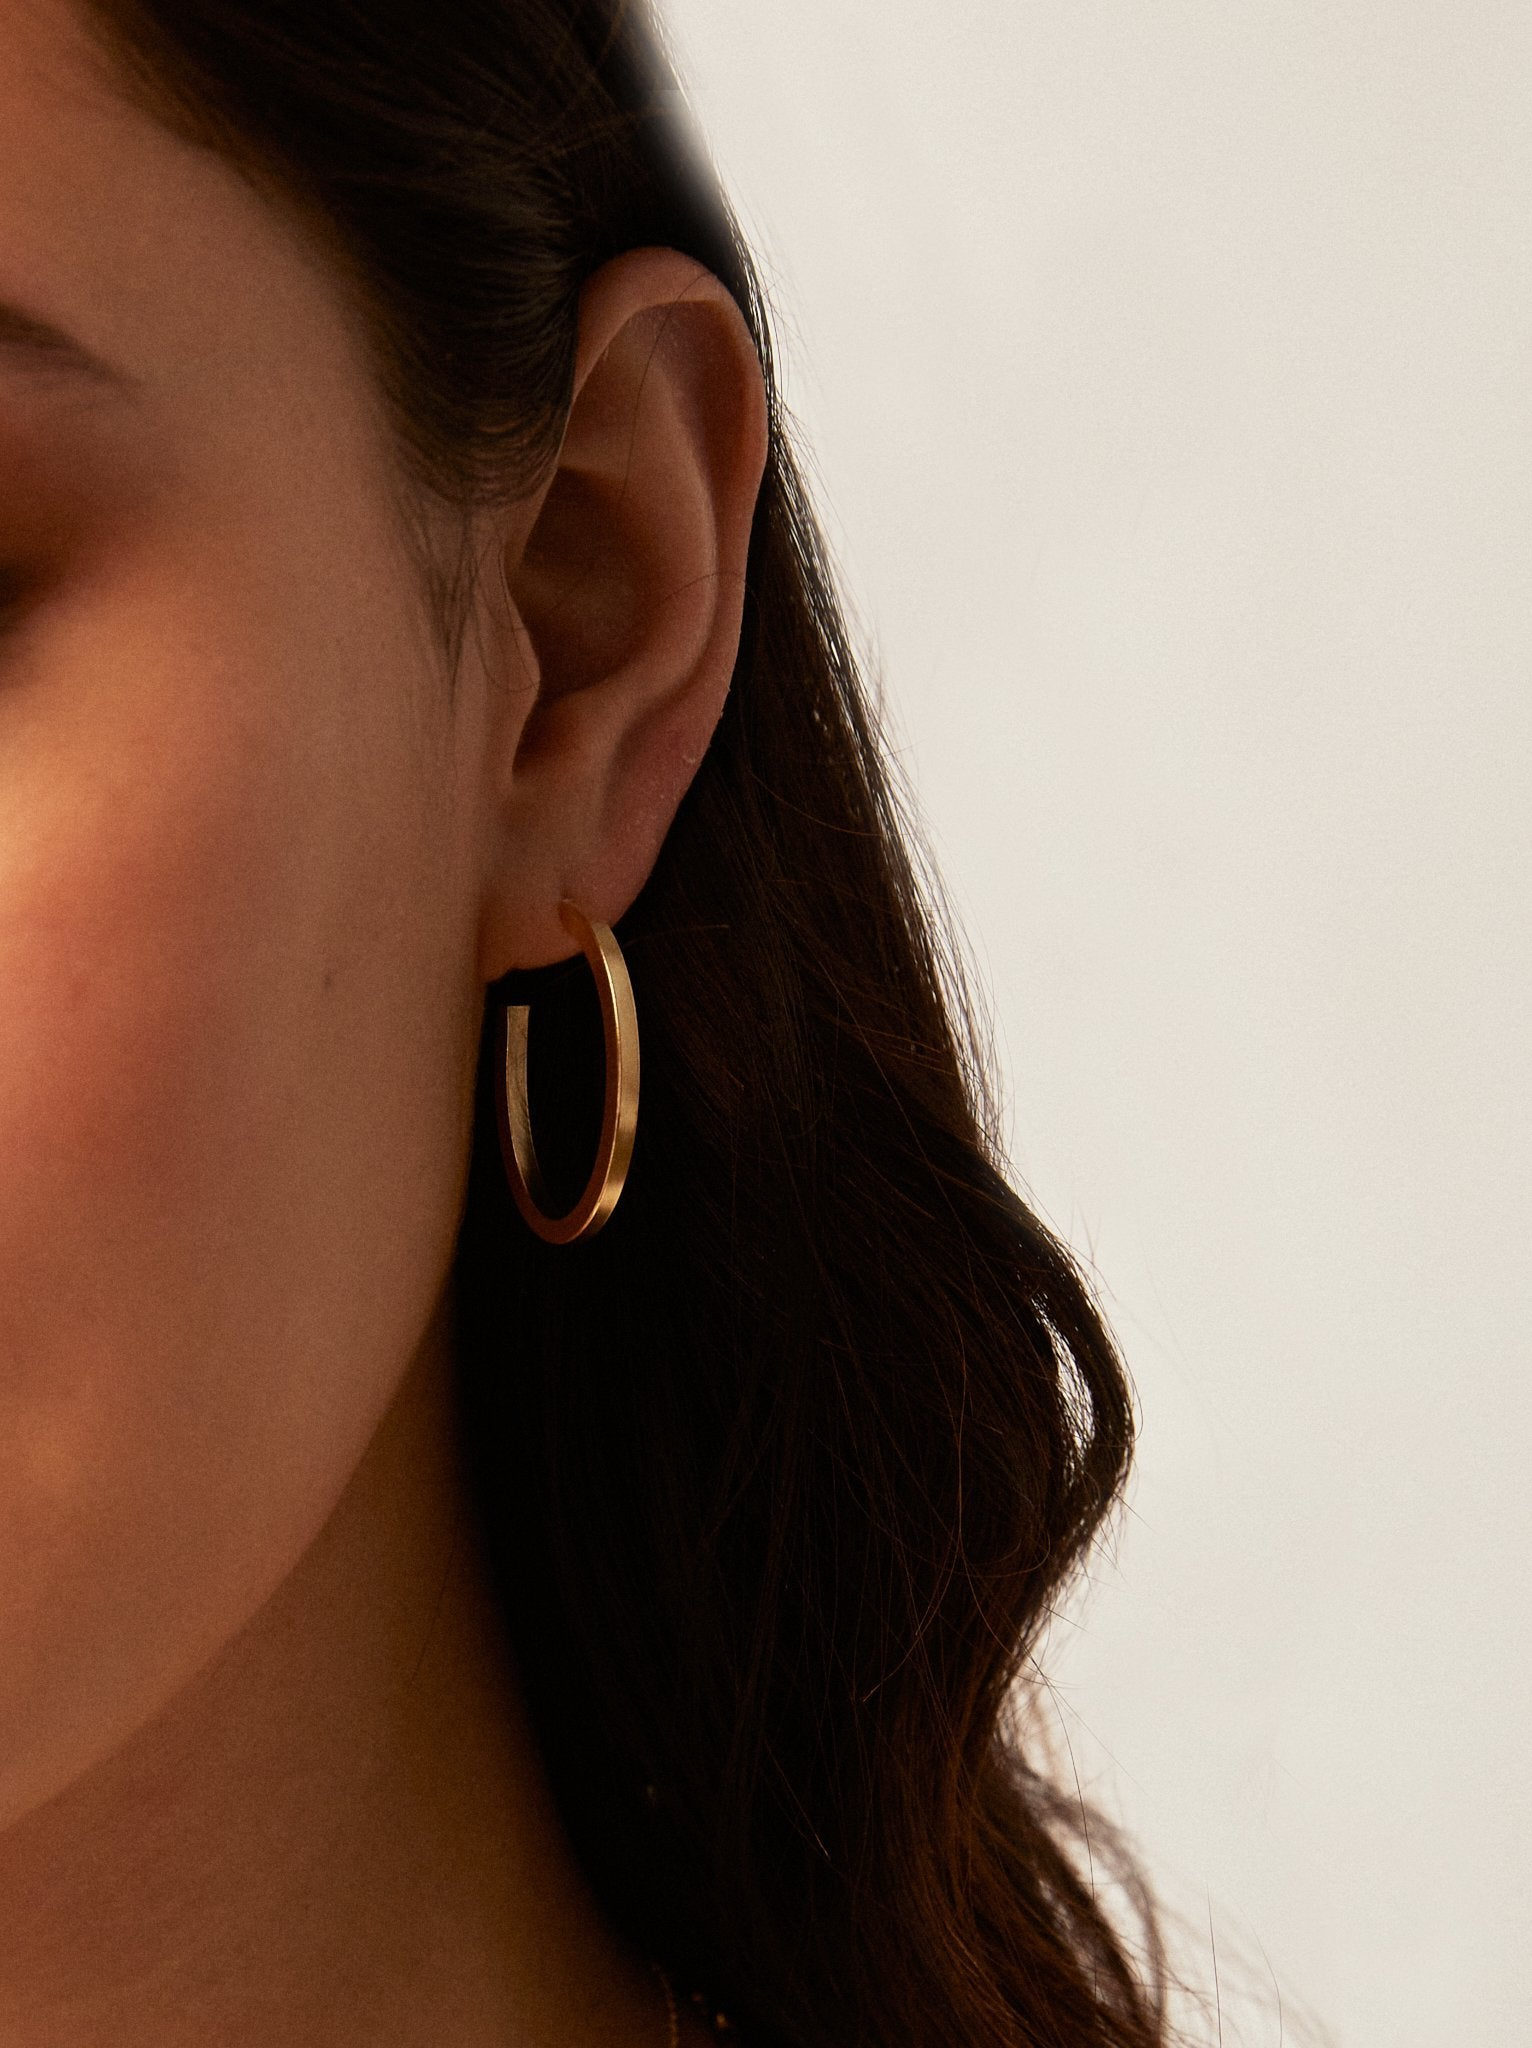 fab'rik - Muse Hoop Earrings: Gold ProductImage-14321041113146